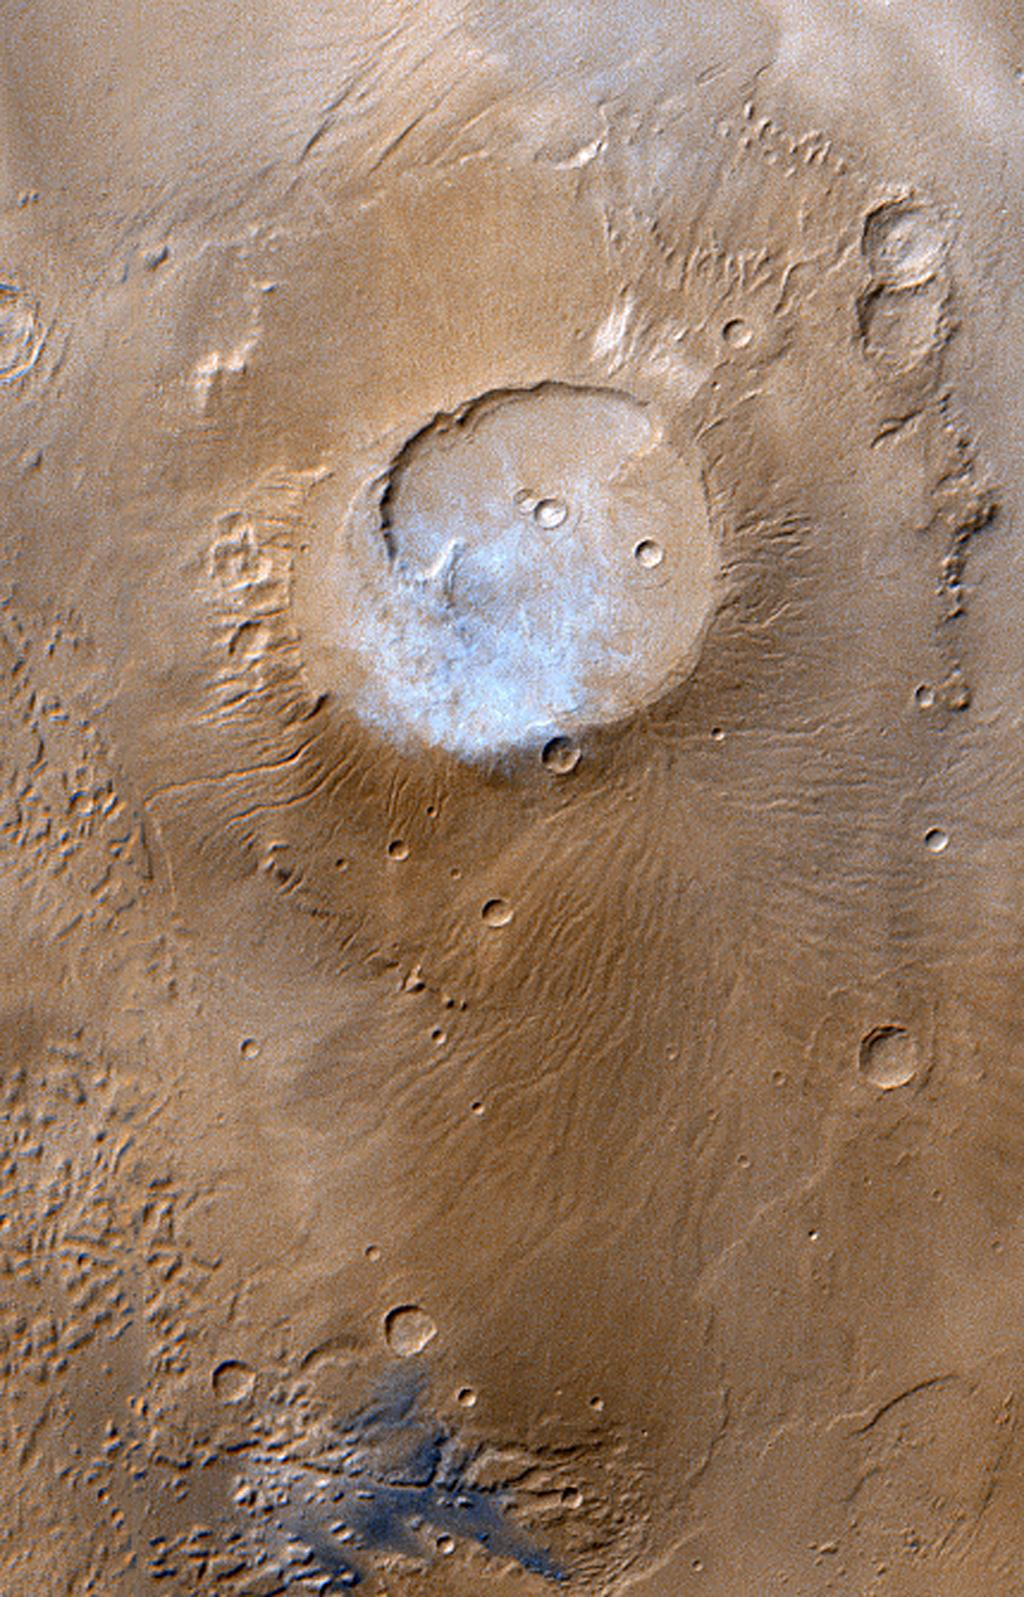 NASA's Mars Global Surveyor passed over the Apollinaris Patera volcano and captured a patch of bright clouds hanging over its summit in the early martian afternoon during the month of April 1999.